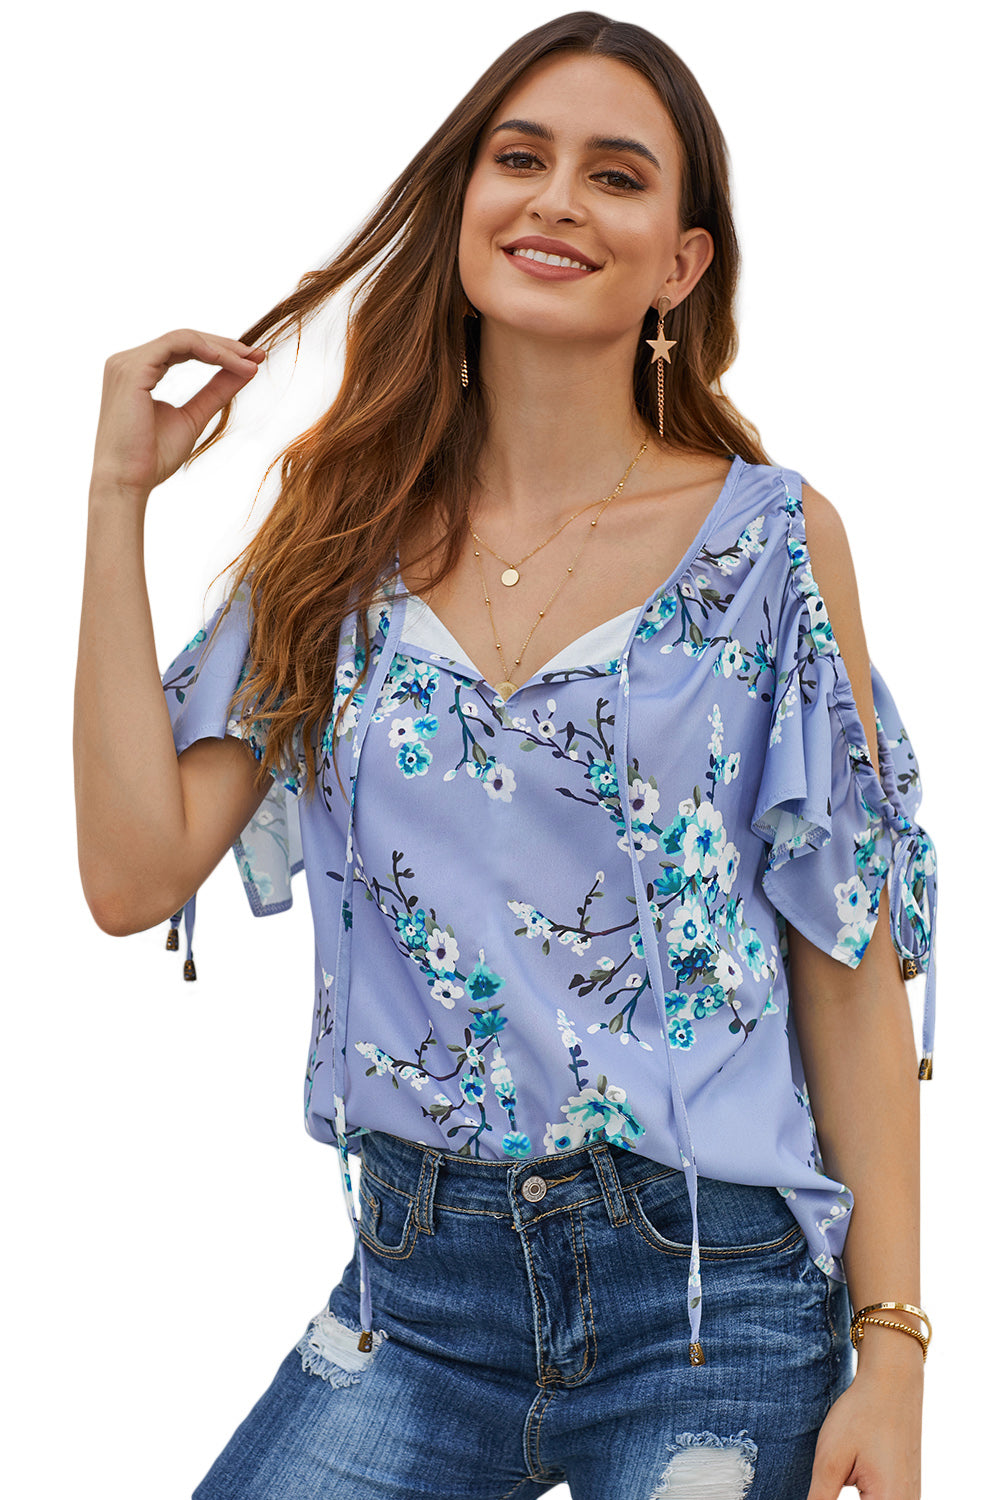 Sky Blue Love Stitch Lifetime of Love Top Blouses & Shirts Discount Designer Fashion Clothes Shoes Bags Women Men Kids Children Black Owned Business